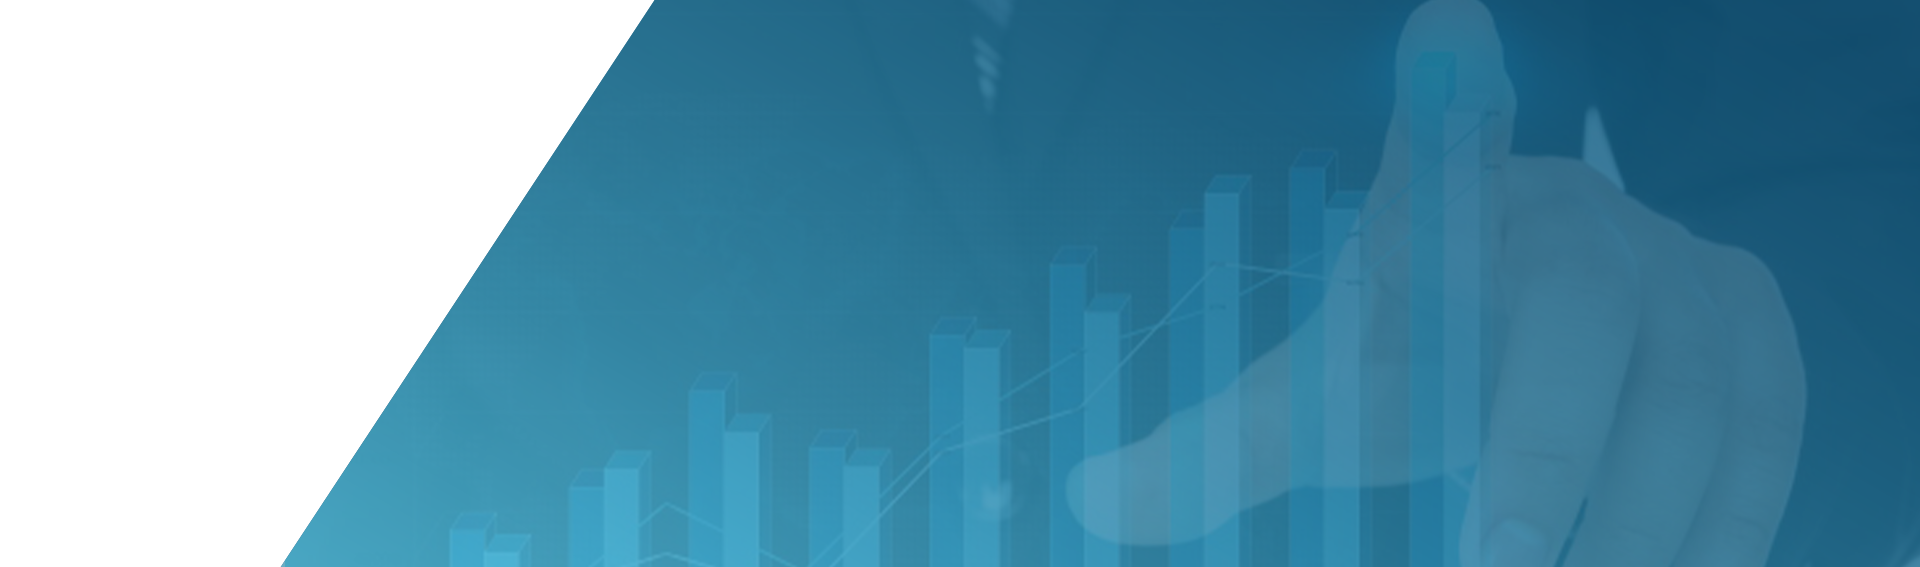 Analytics And Reporting Tailored Solutions